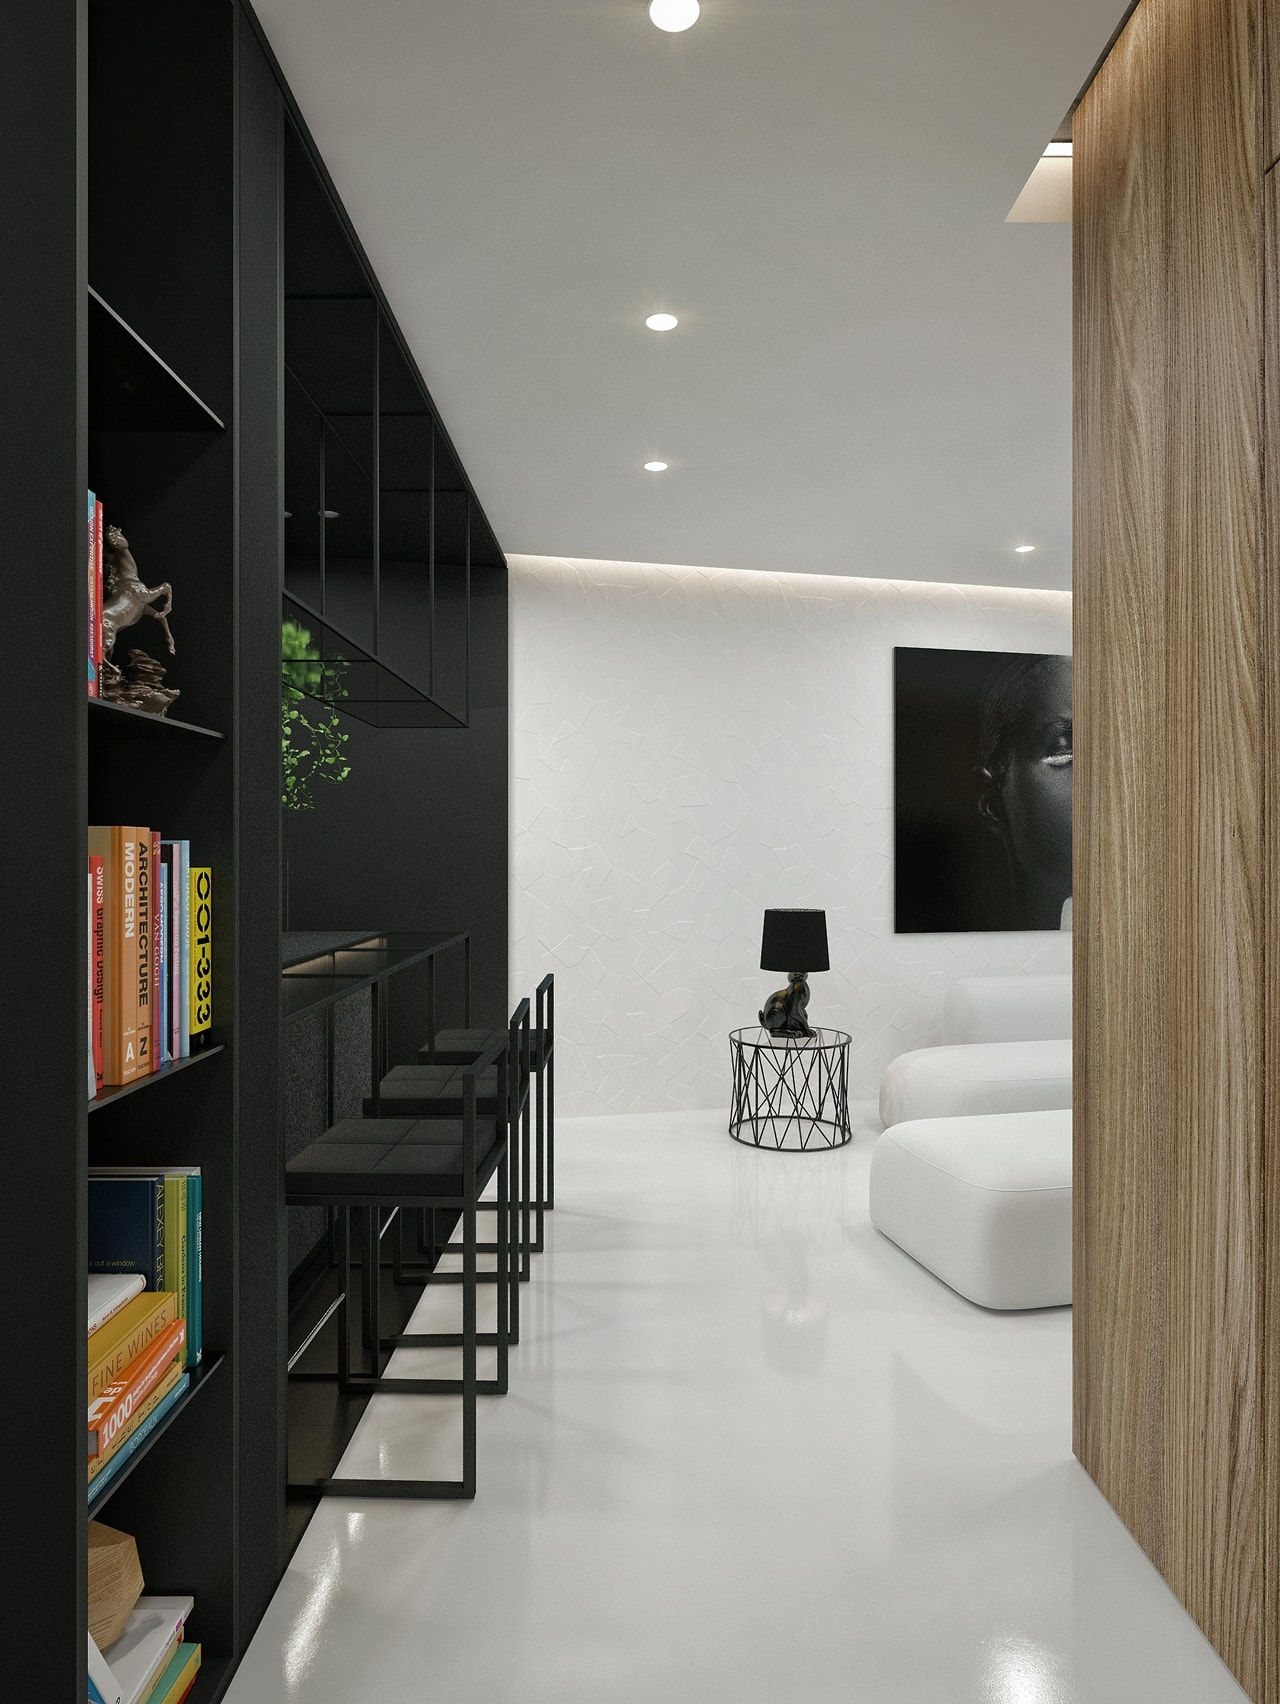 Interior Design Home Decorating Ideas: Black And White Interior Design Ideas: Modern Apartment By